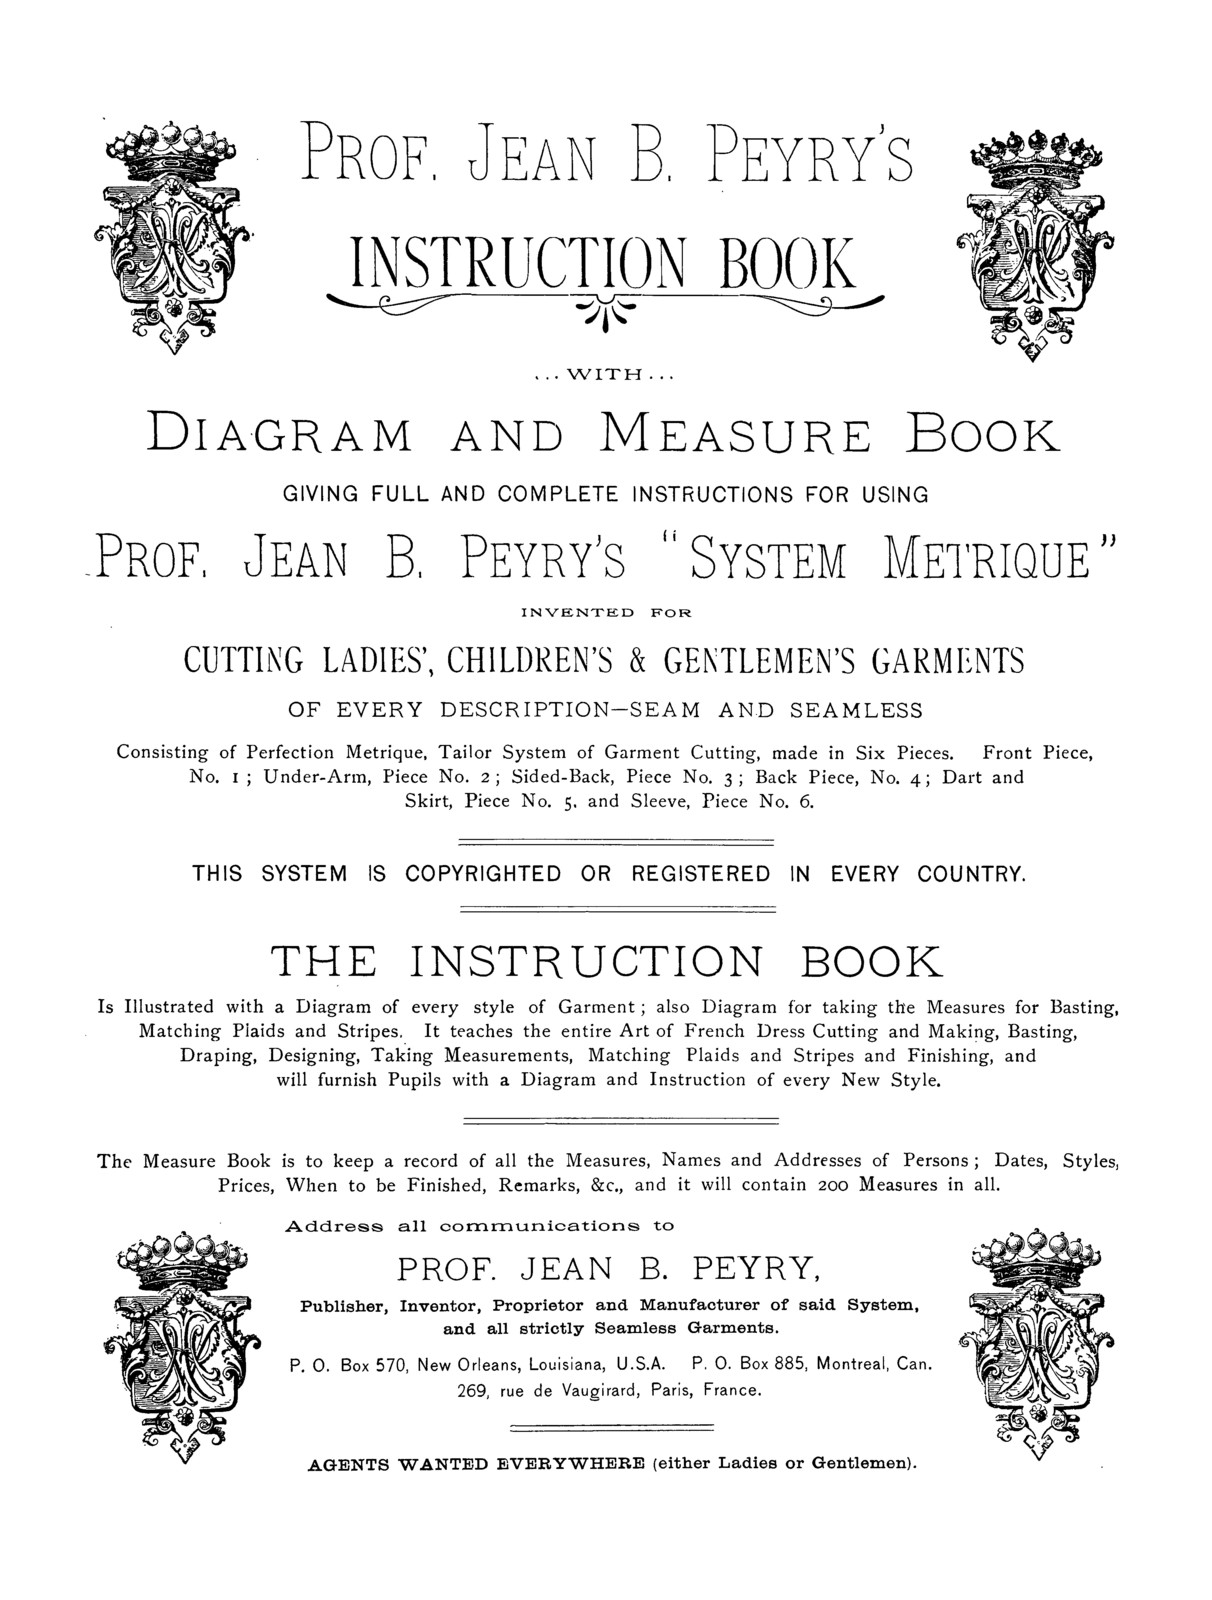 Prof. Jean B. Peyry.s instruction book with diagram and measure book..